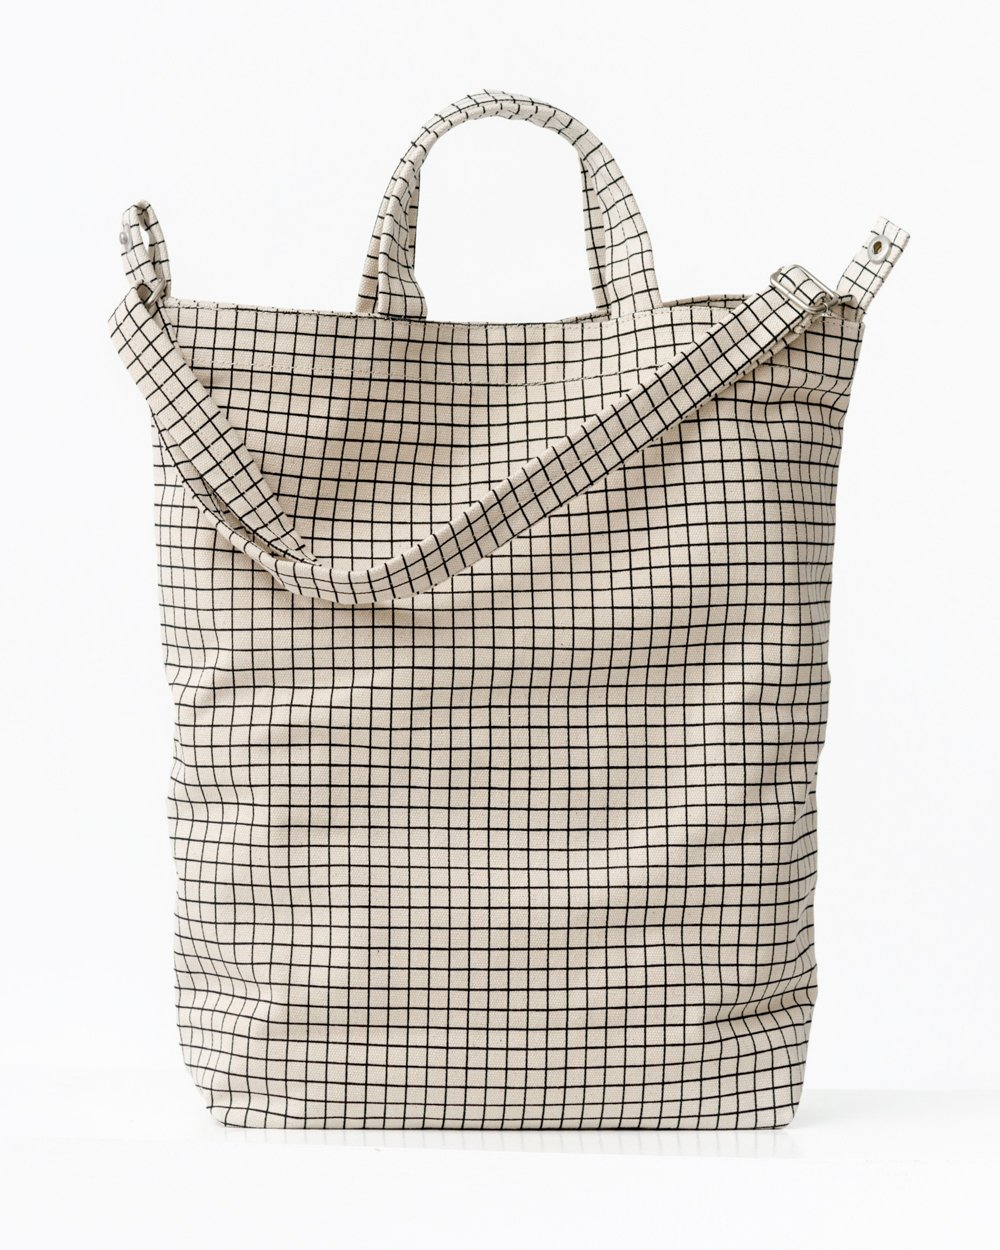 BAGGU Duck Bag Canvas Tote, Essential Everyday Tote, Spacious and Roomy, Natural Grid by BAGGU